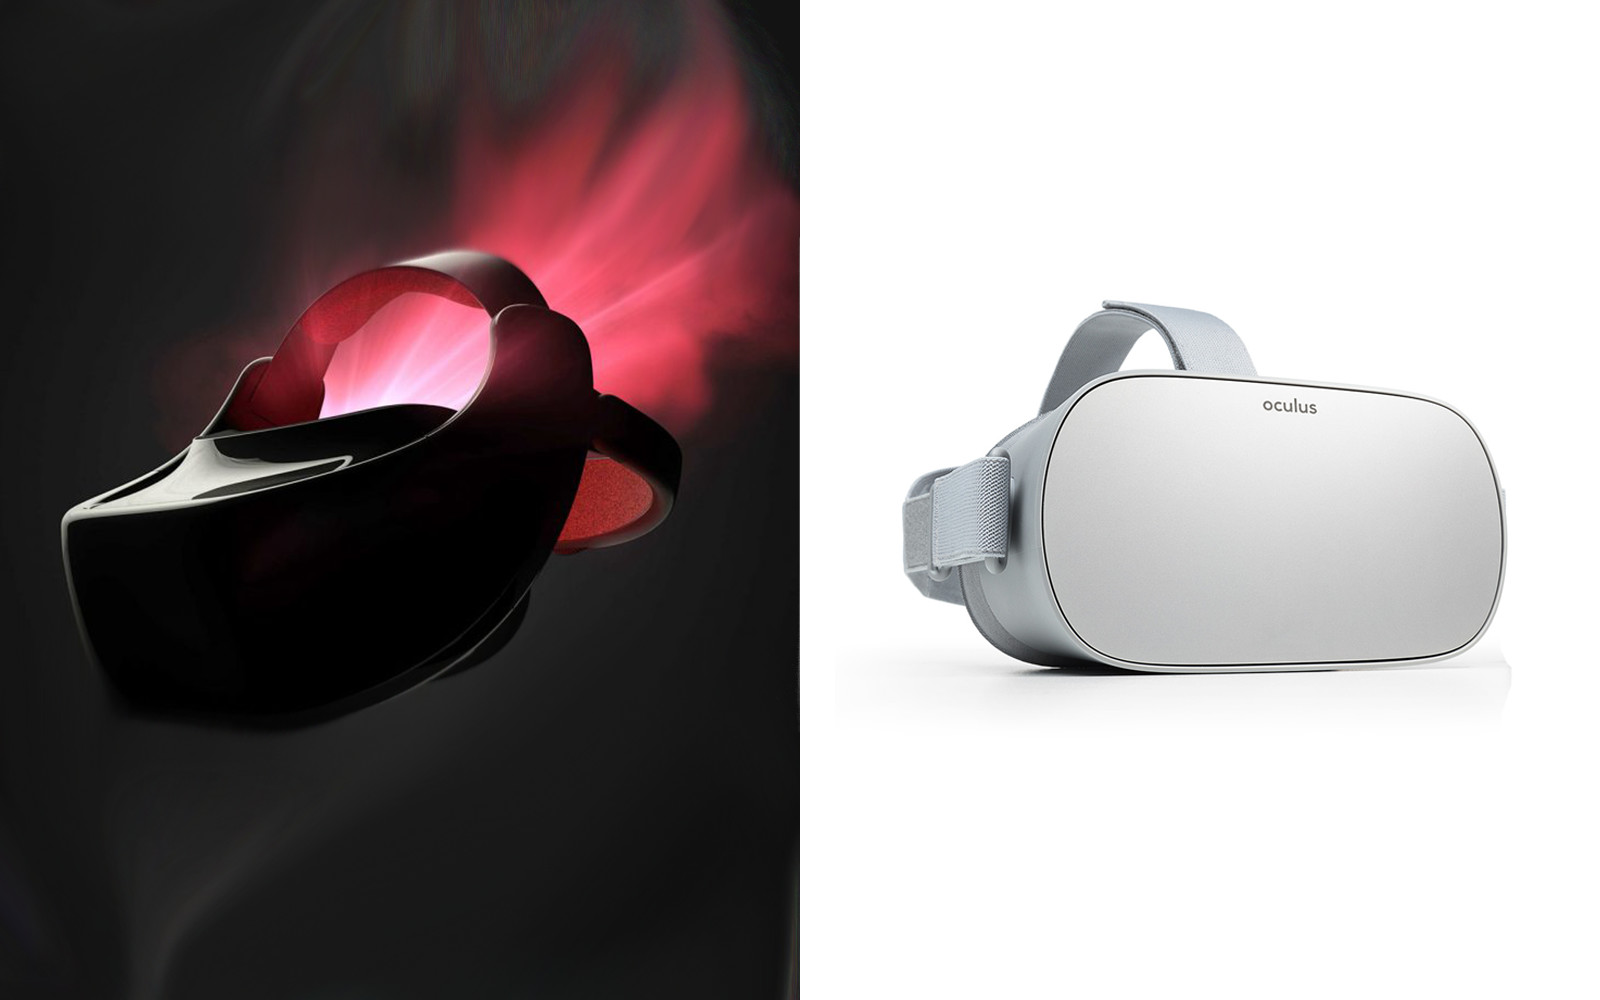 Oculus And HTC Vive Set To Compete On The Mobile VR Front